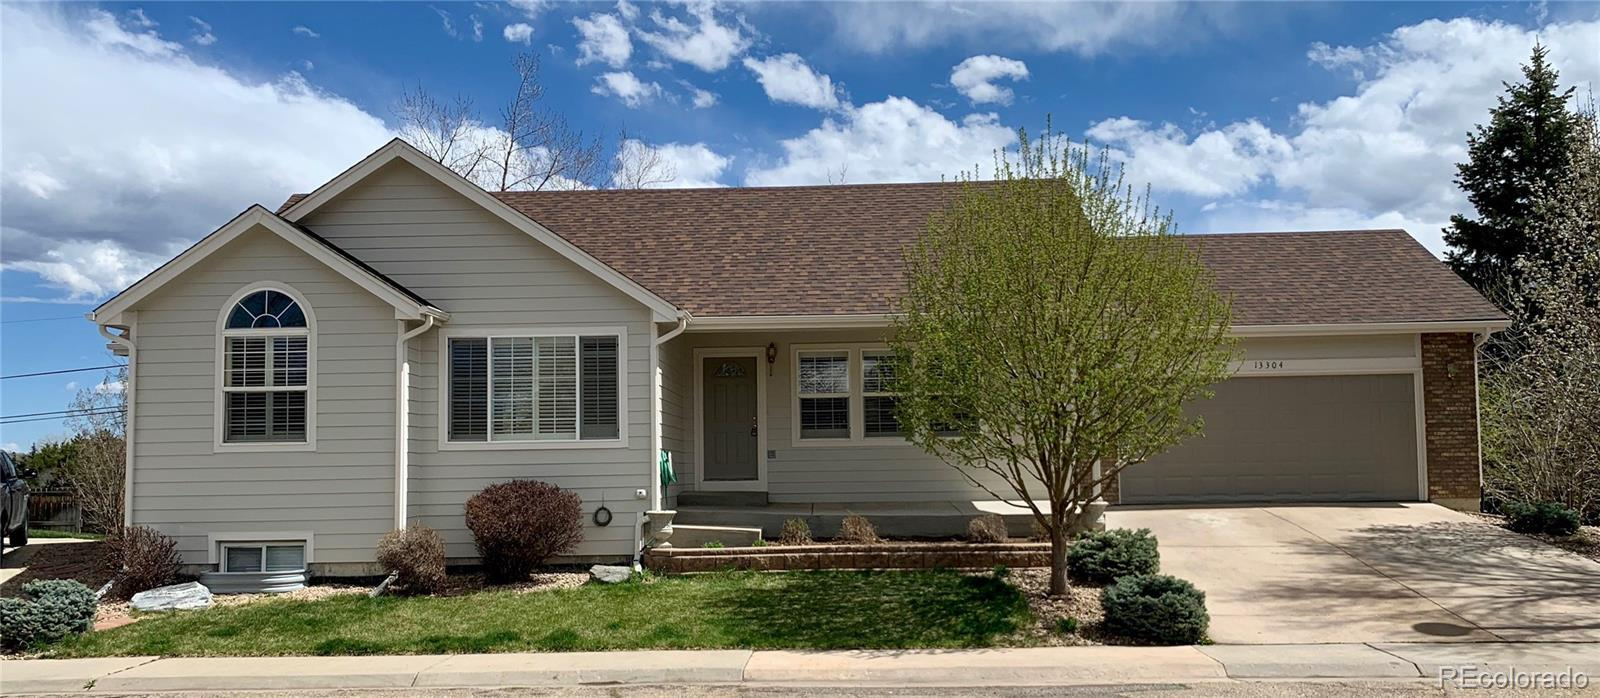 13304 W 70th Place, Arvada, CO 80004 - #: 5074077